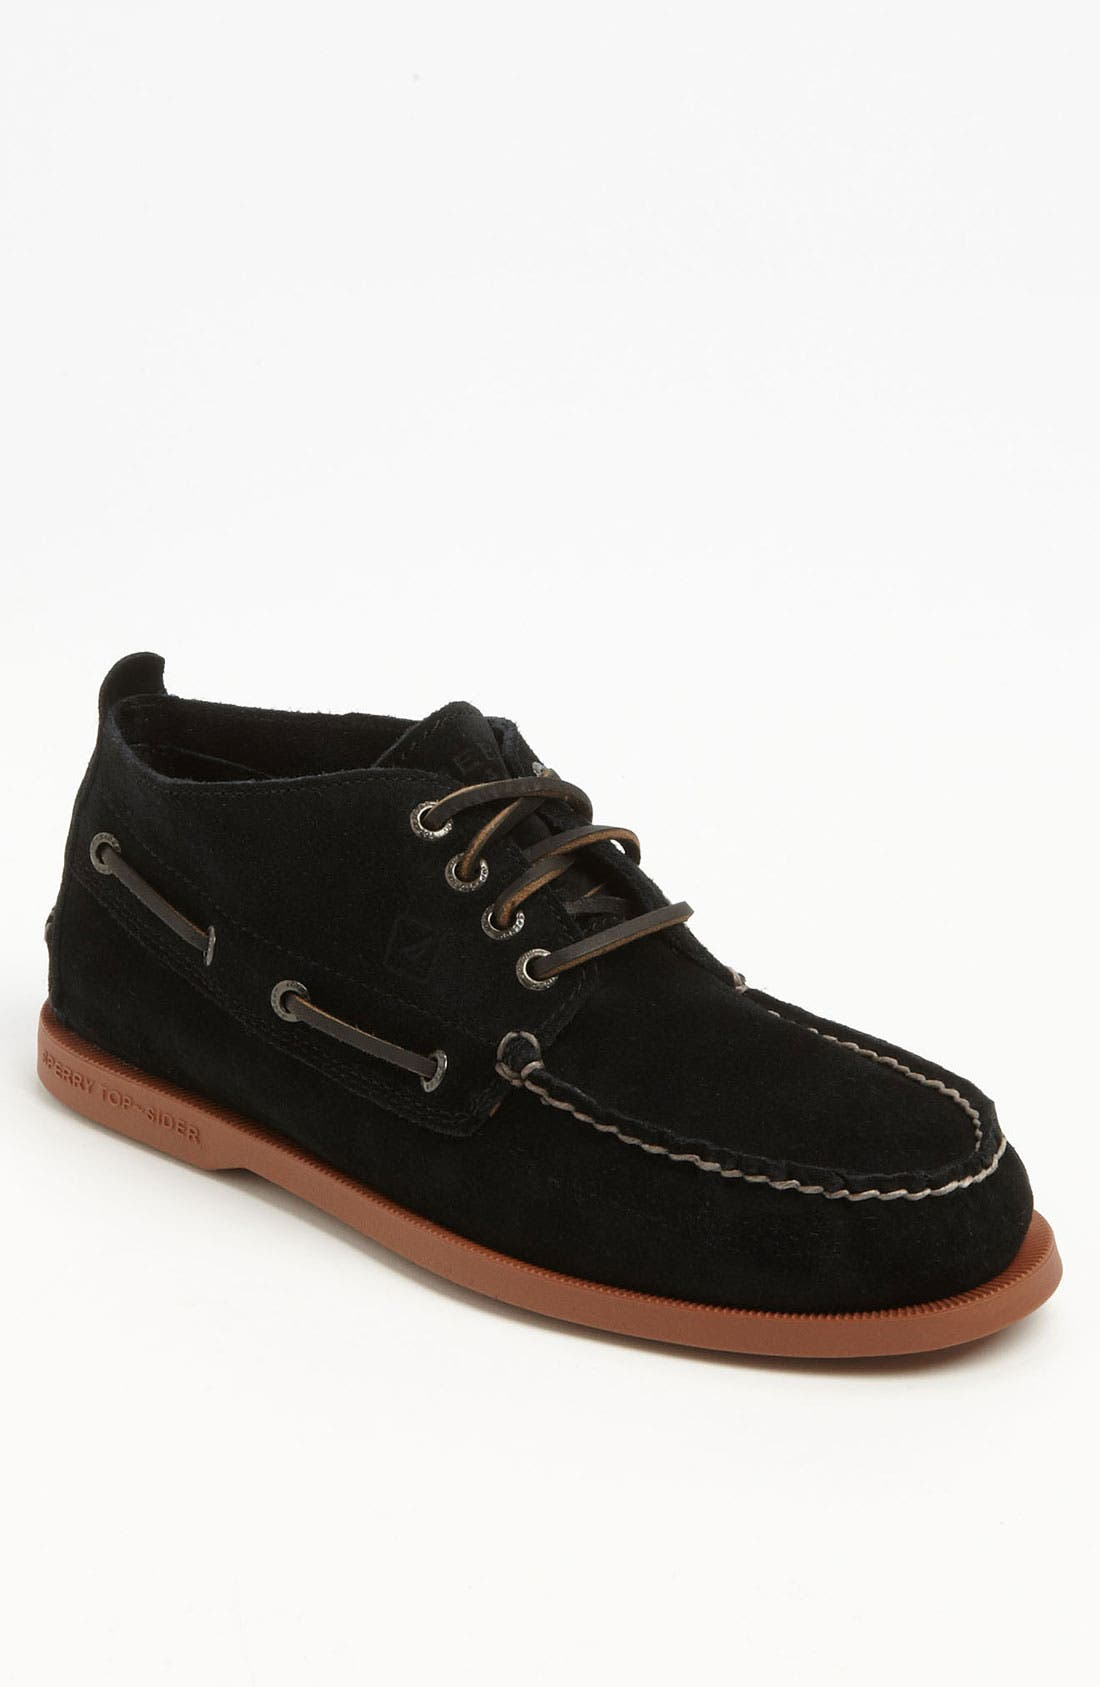 Alternate Image 1 Selected - Sperry Top-Sider® 'Authentic Original' Relaxed Chukka Boot (Men)